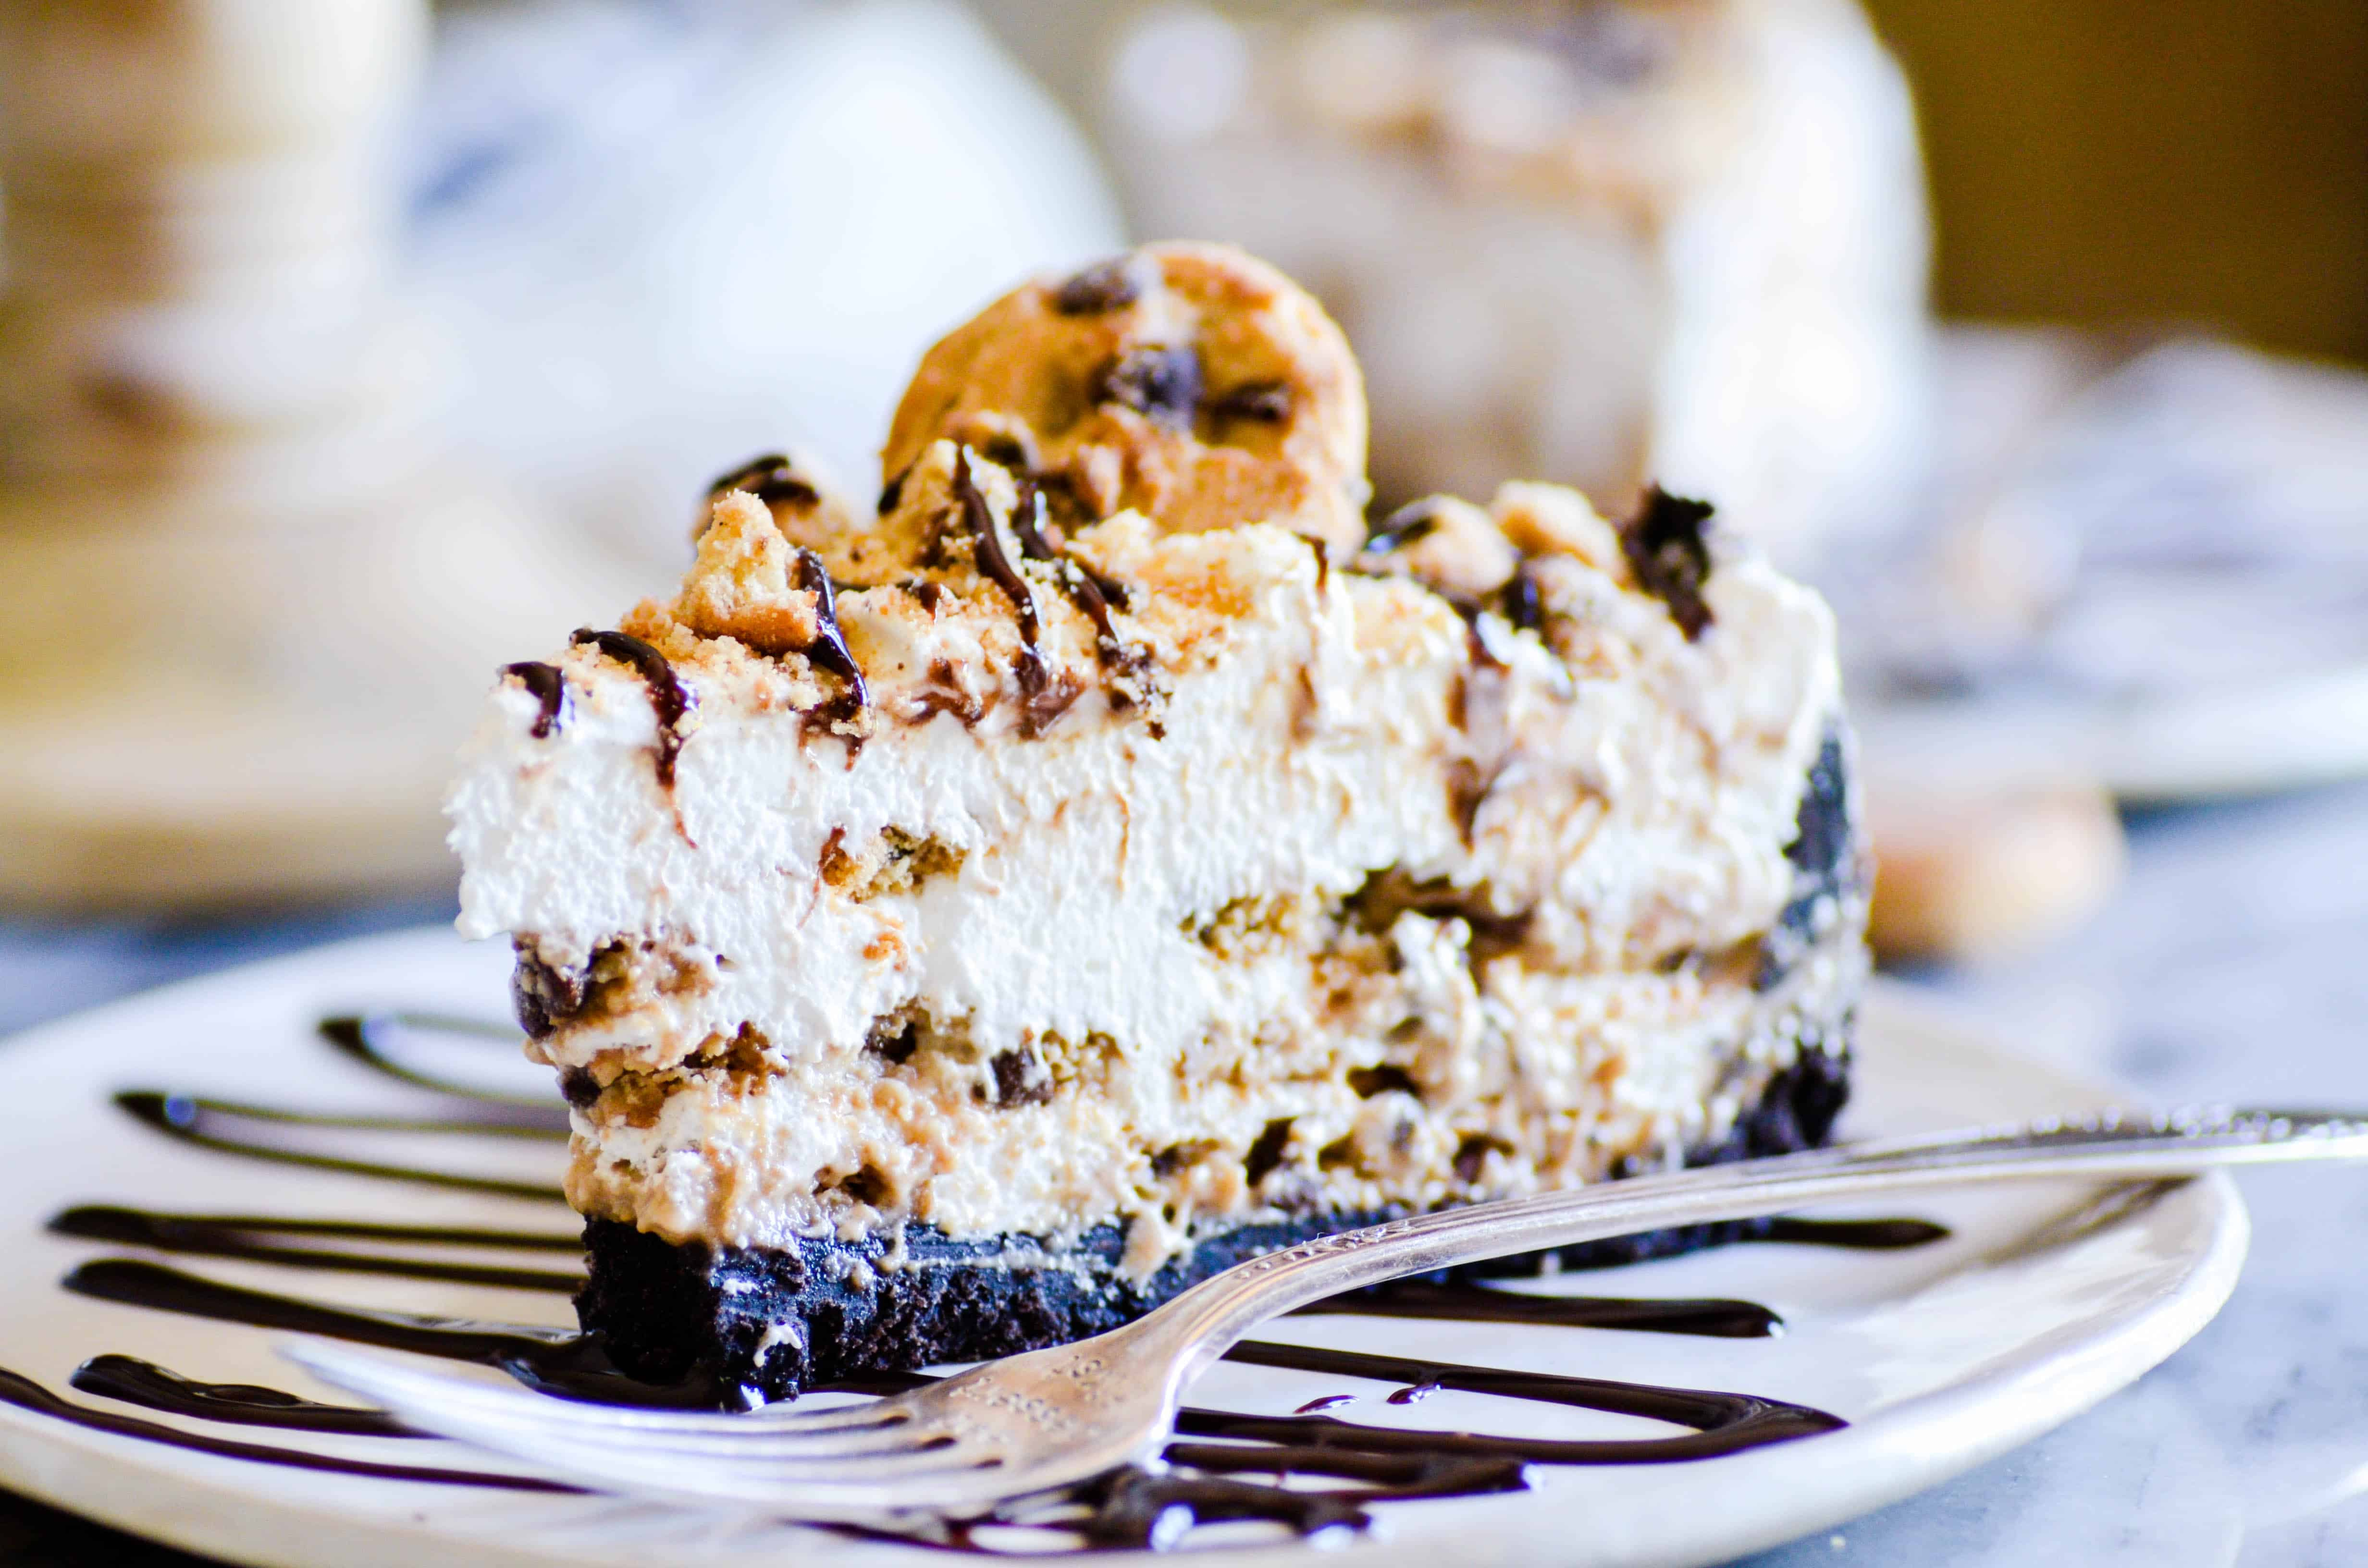 Seven layers of chocolate chip cookies and whipped cream piled into an Oreo crust. No need to break a sweat with this dreamy No Bake Milk & Cookies Pie-- it's so easy!